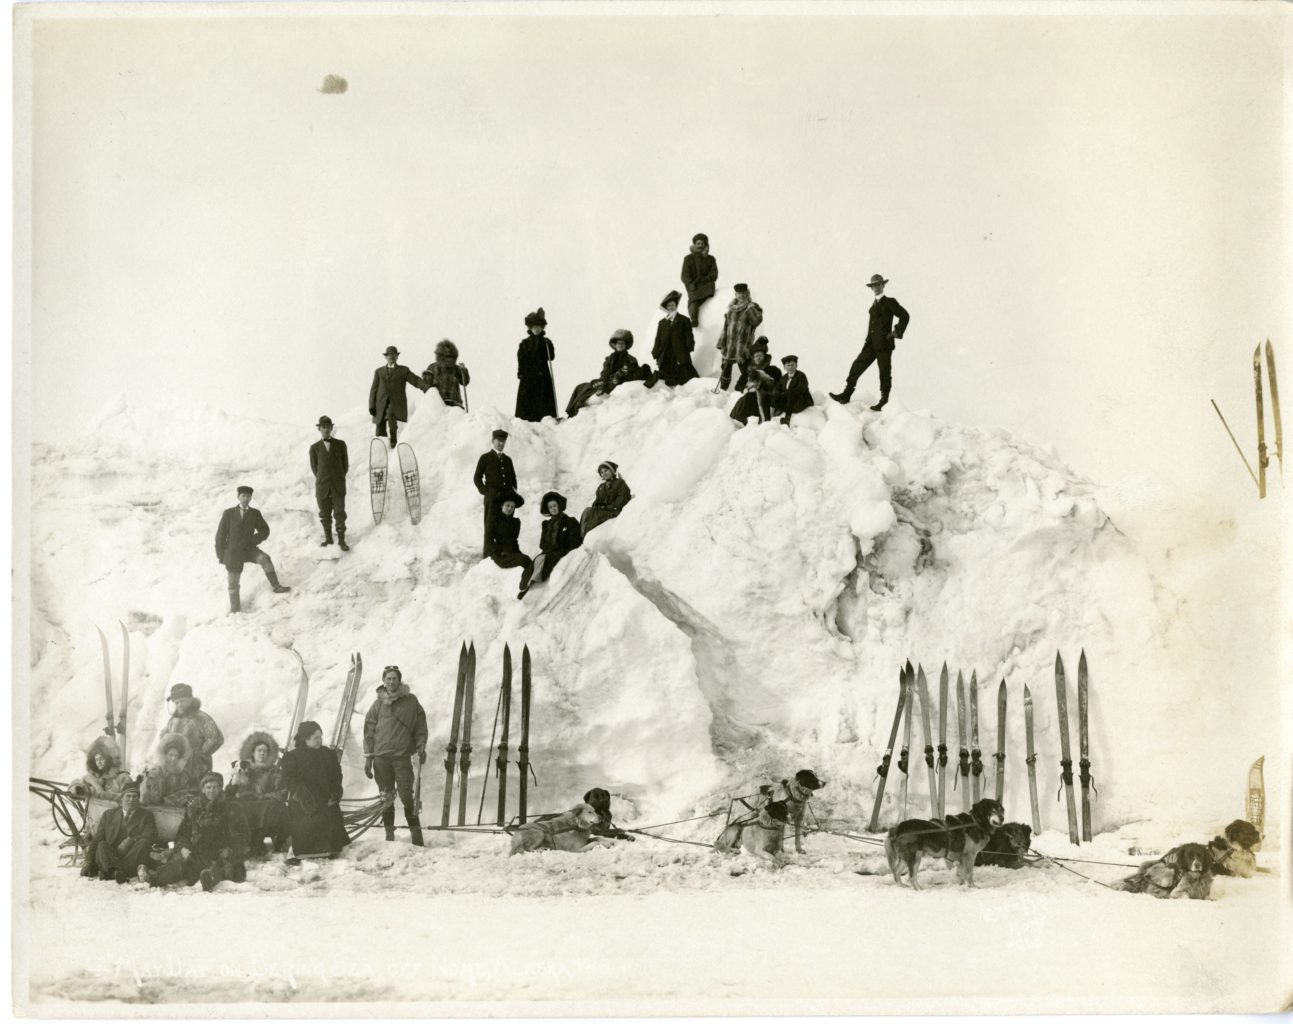 Group with sled dogs pose on snow pile.